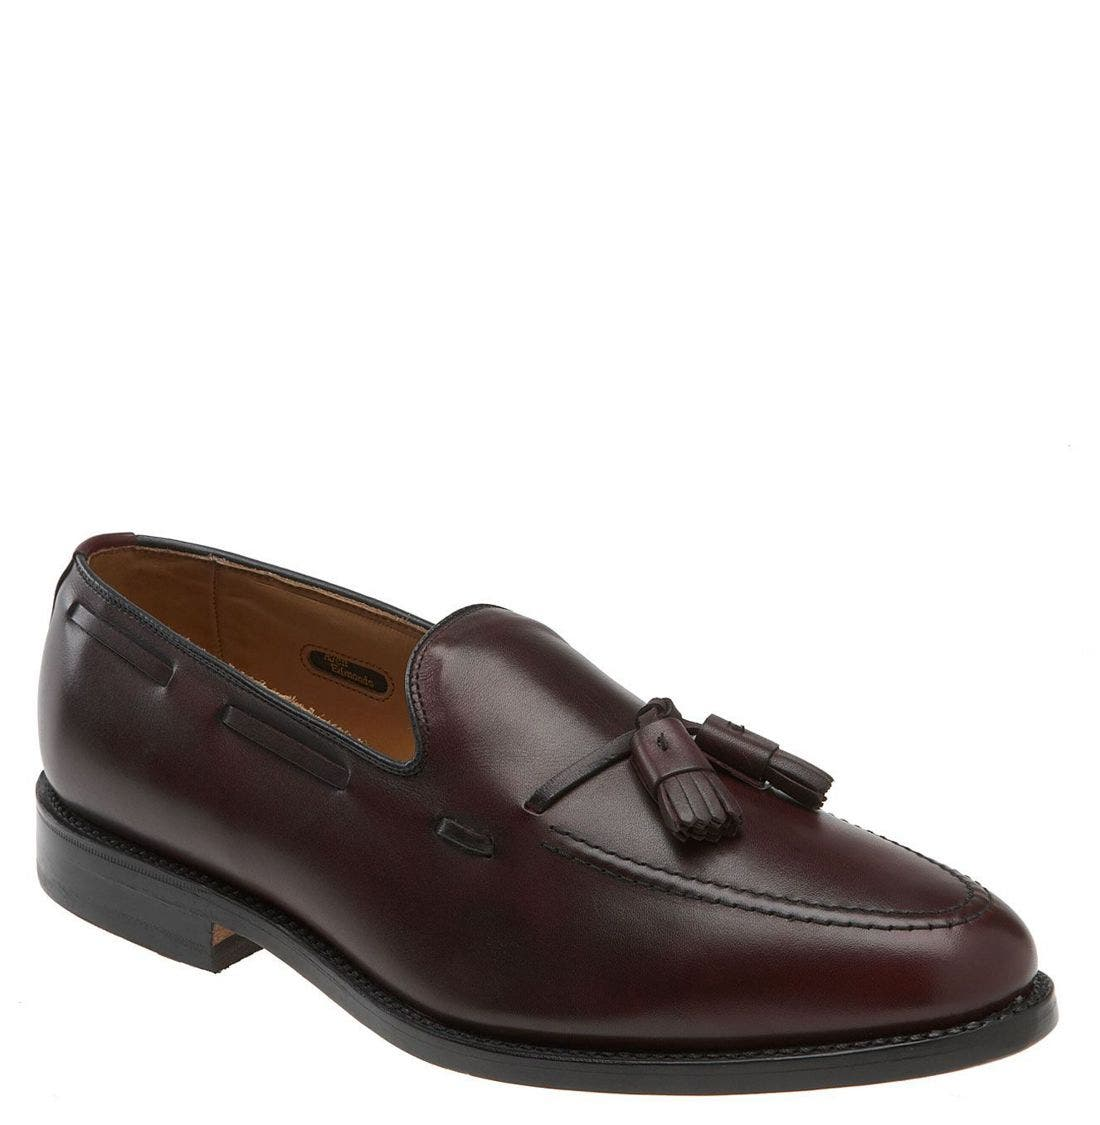 'Grayson' Tassel Loafer,                         Main,                         color, Merlot Leather